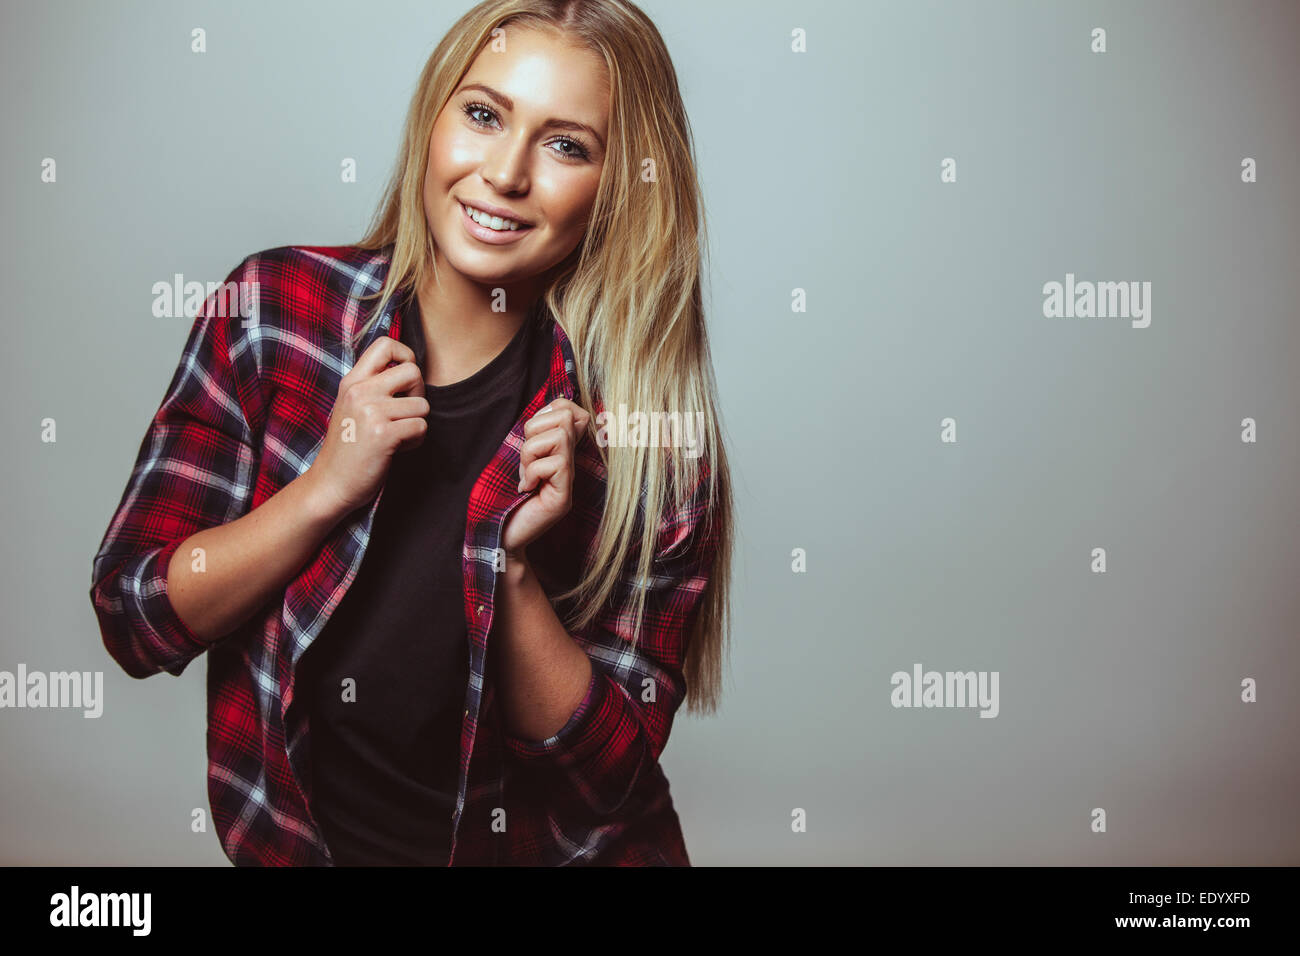 Portrait of happy young woman in casual wear against white wall. Young teenager looking at camera with a sweet smile. - Stock Image